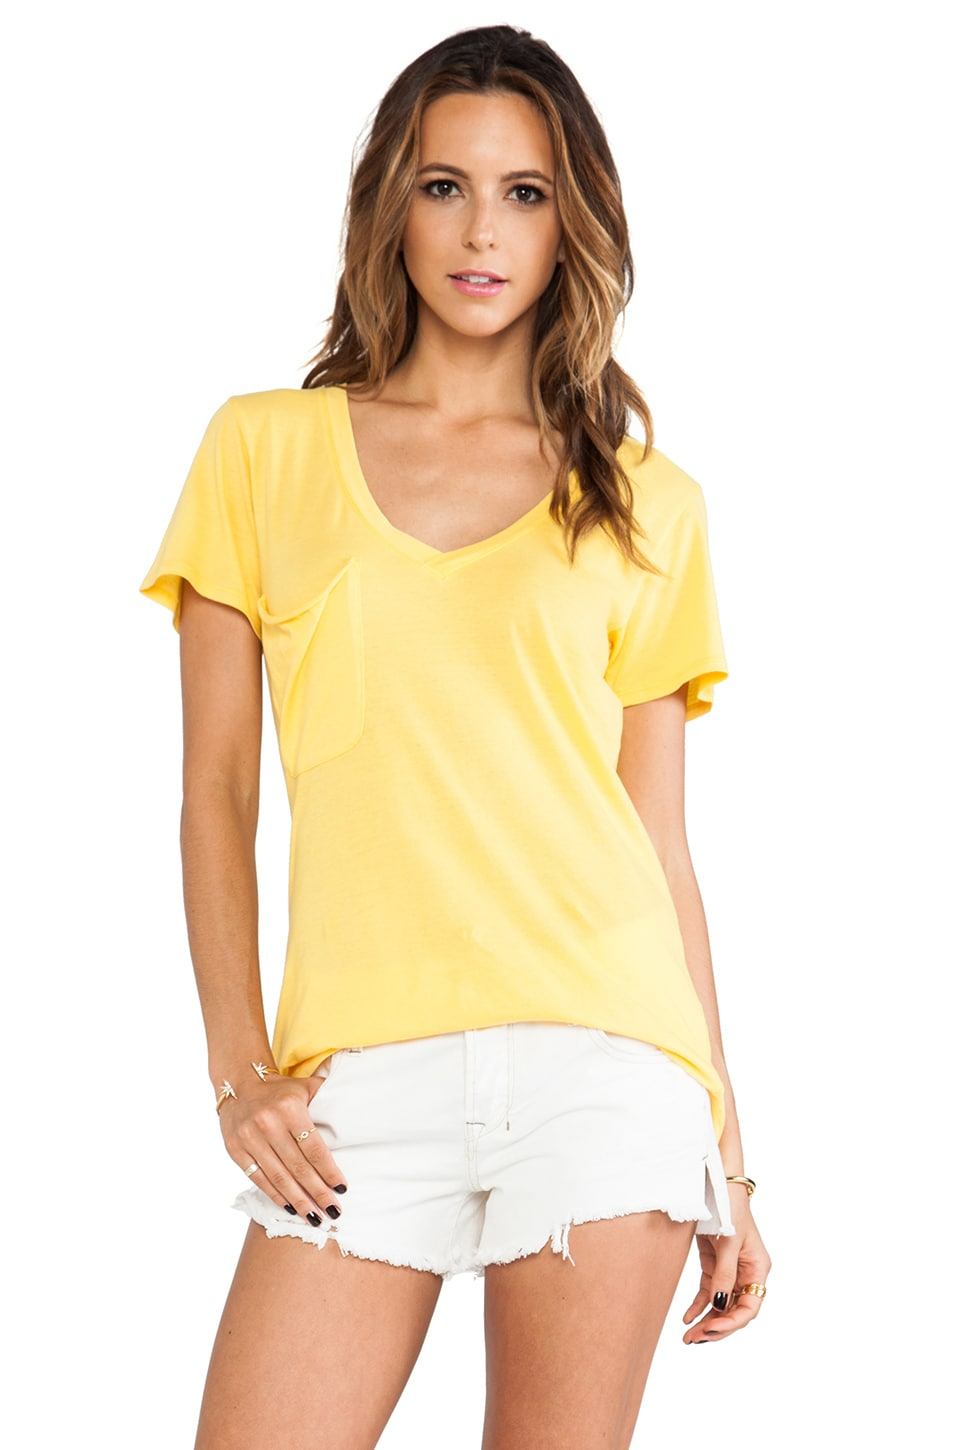 Bobi Light Weight Jersey Pocket Tee in Sunburst